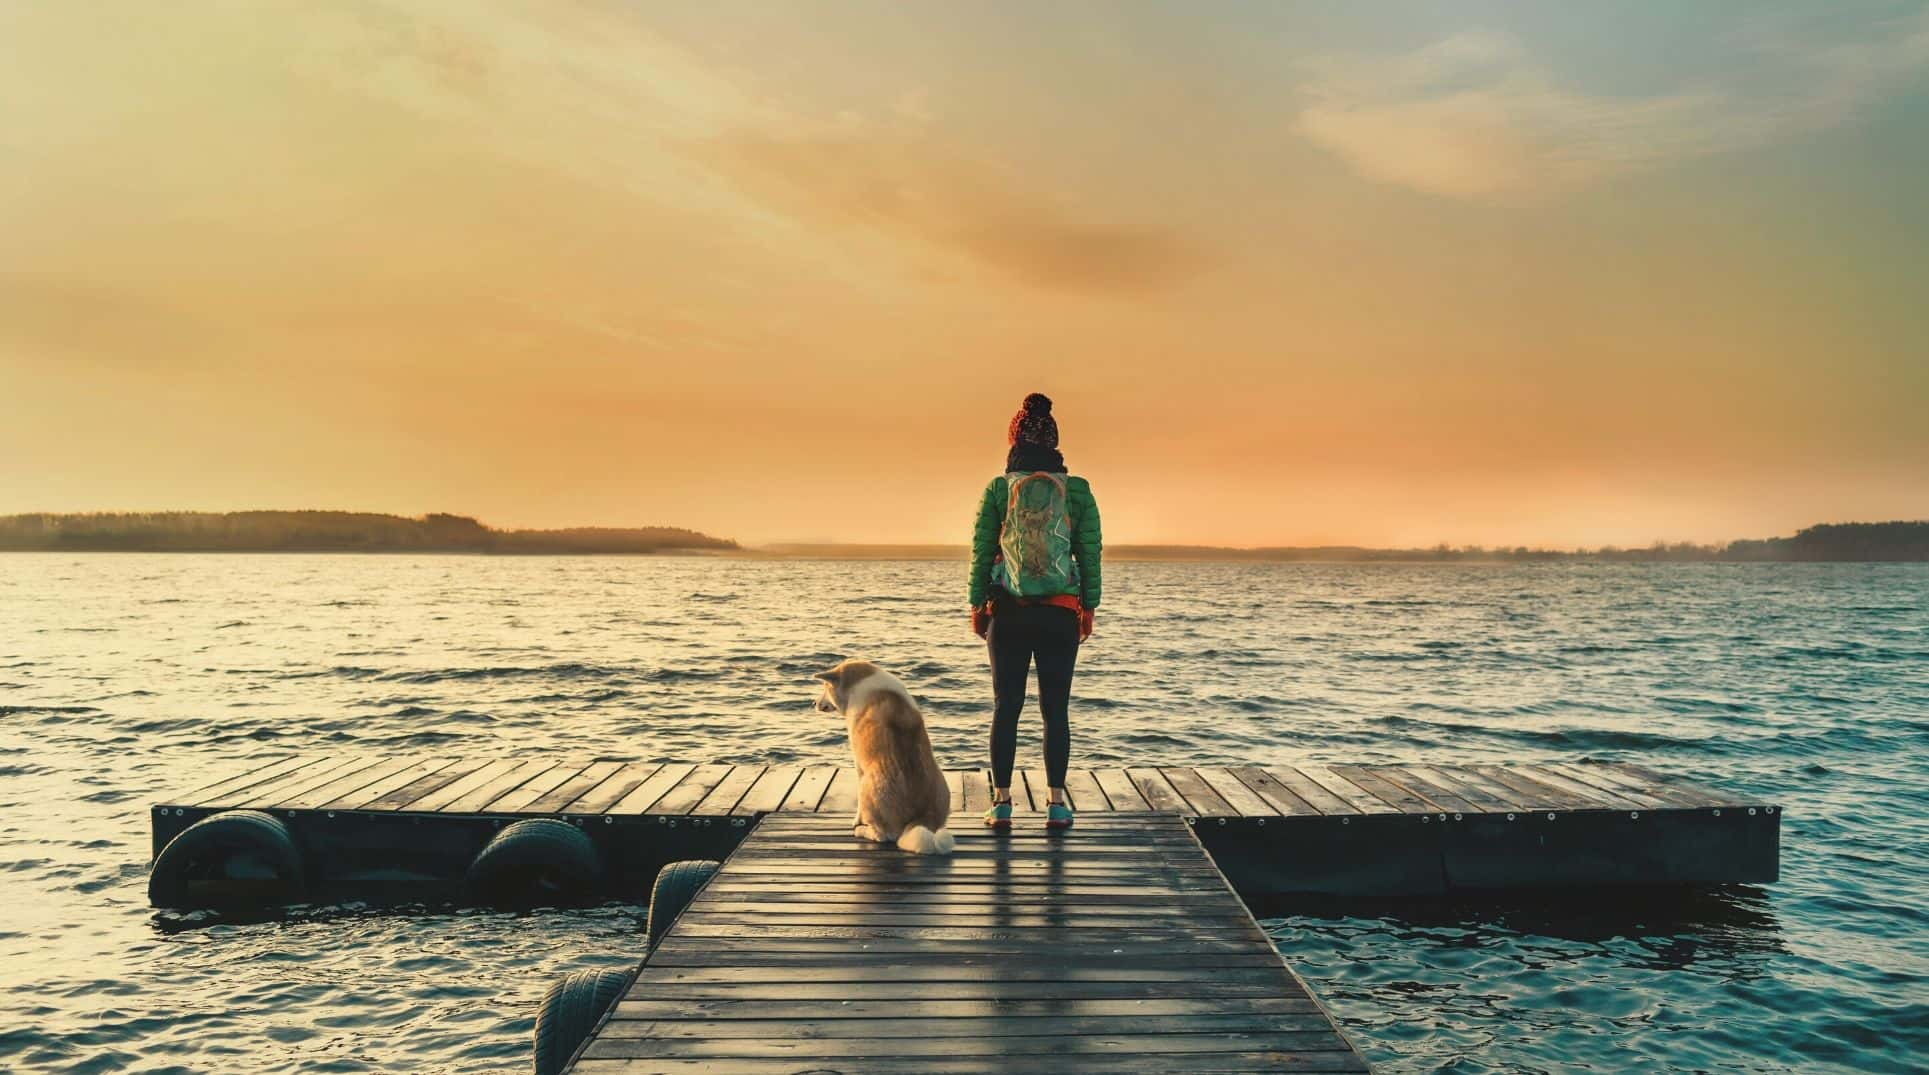 person and dog at the end of lake pier at sunset